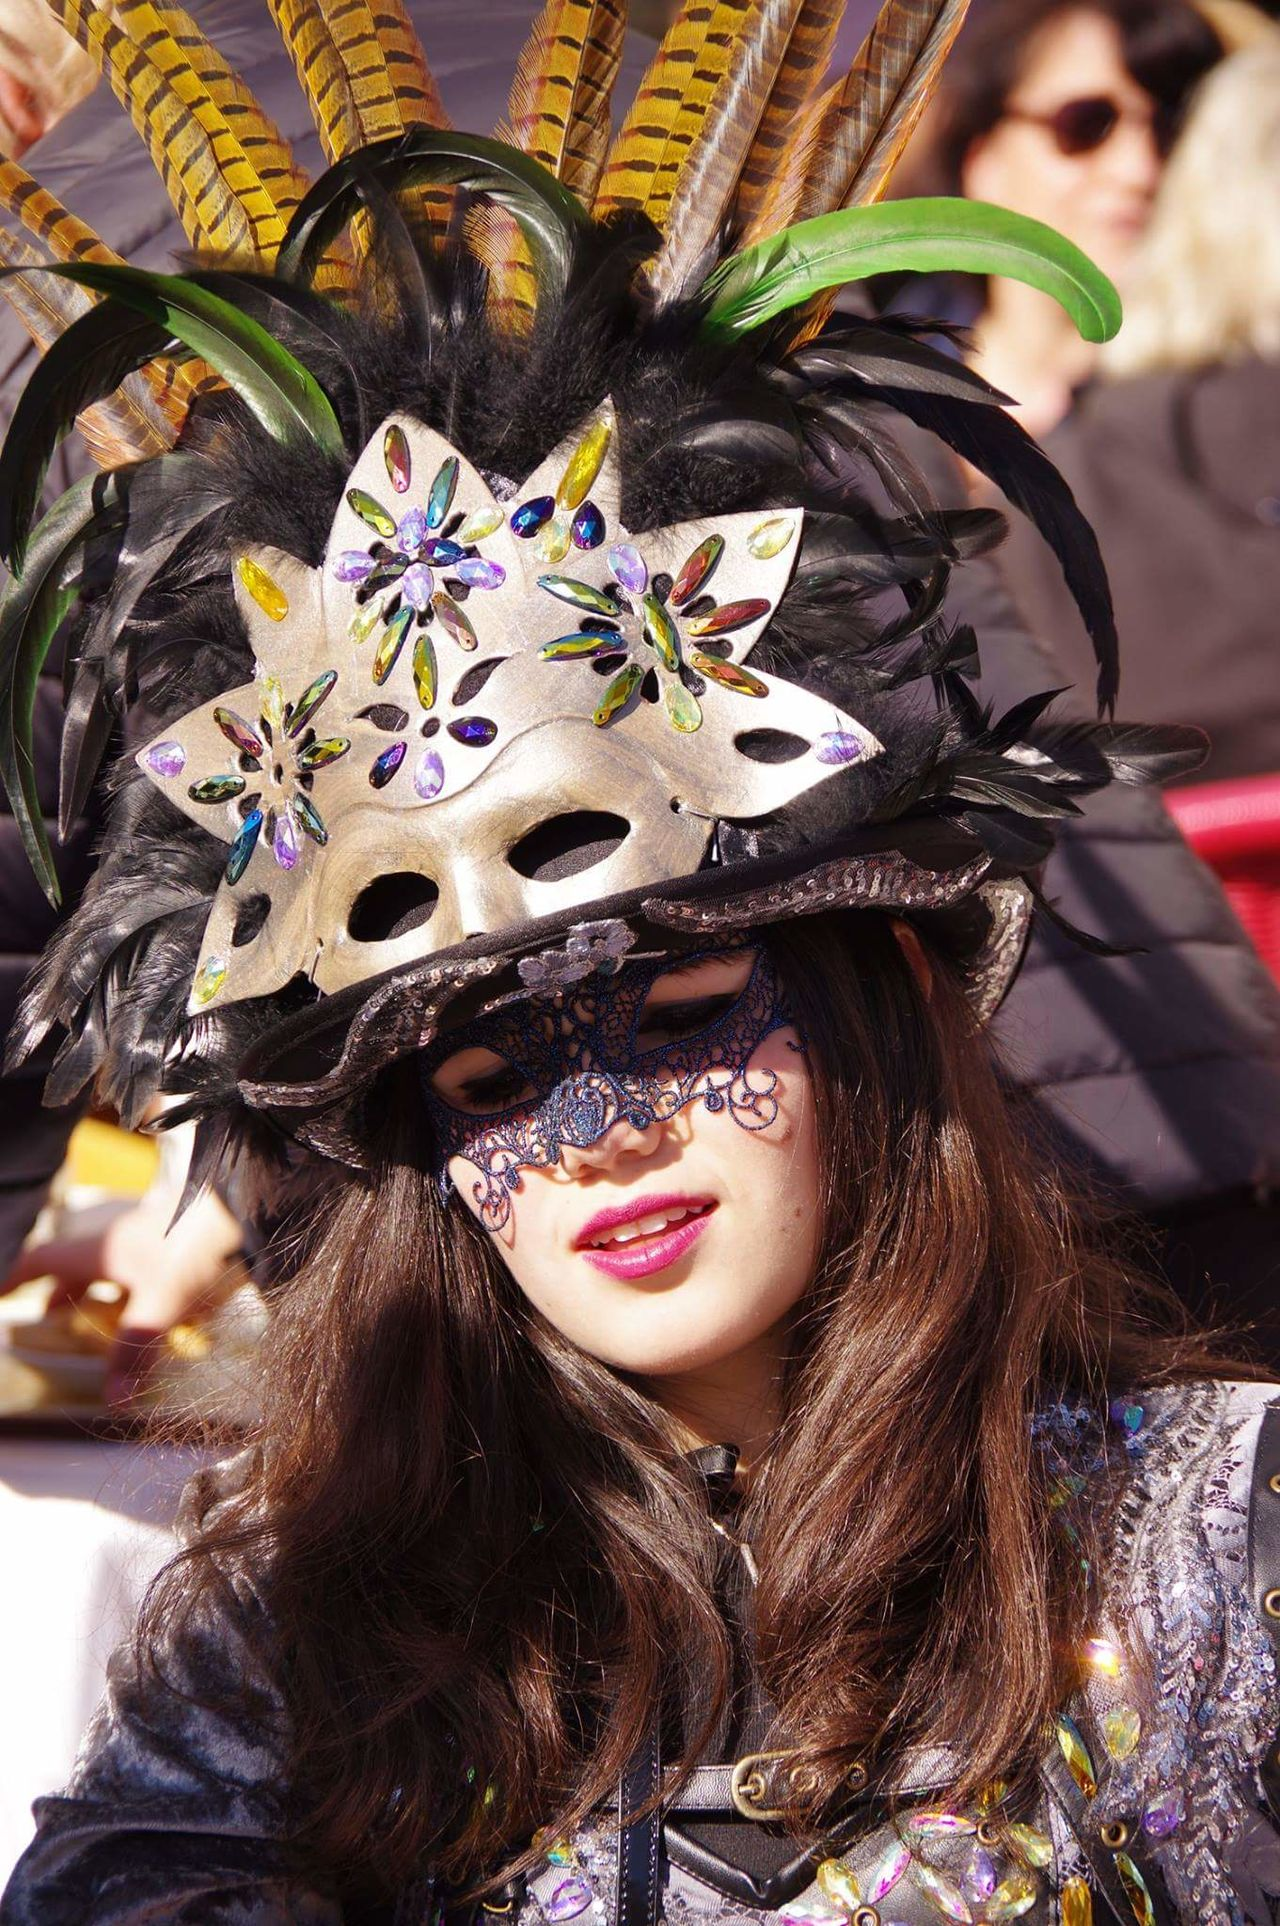 Cultures Headdress Portrait Lifestyles Traditional Clothing One Person Only Women Young Adult Carnevale Di Venezia Maschera Viso Dipinta A Mano Maschera Viso Maschera Veneziana Venetian Mask Gold Colored Mascherina Venice, Italy